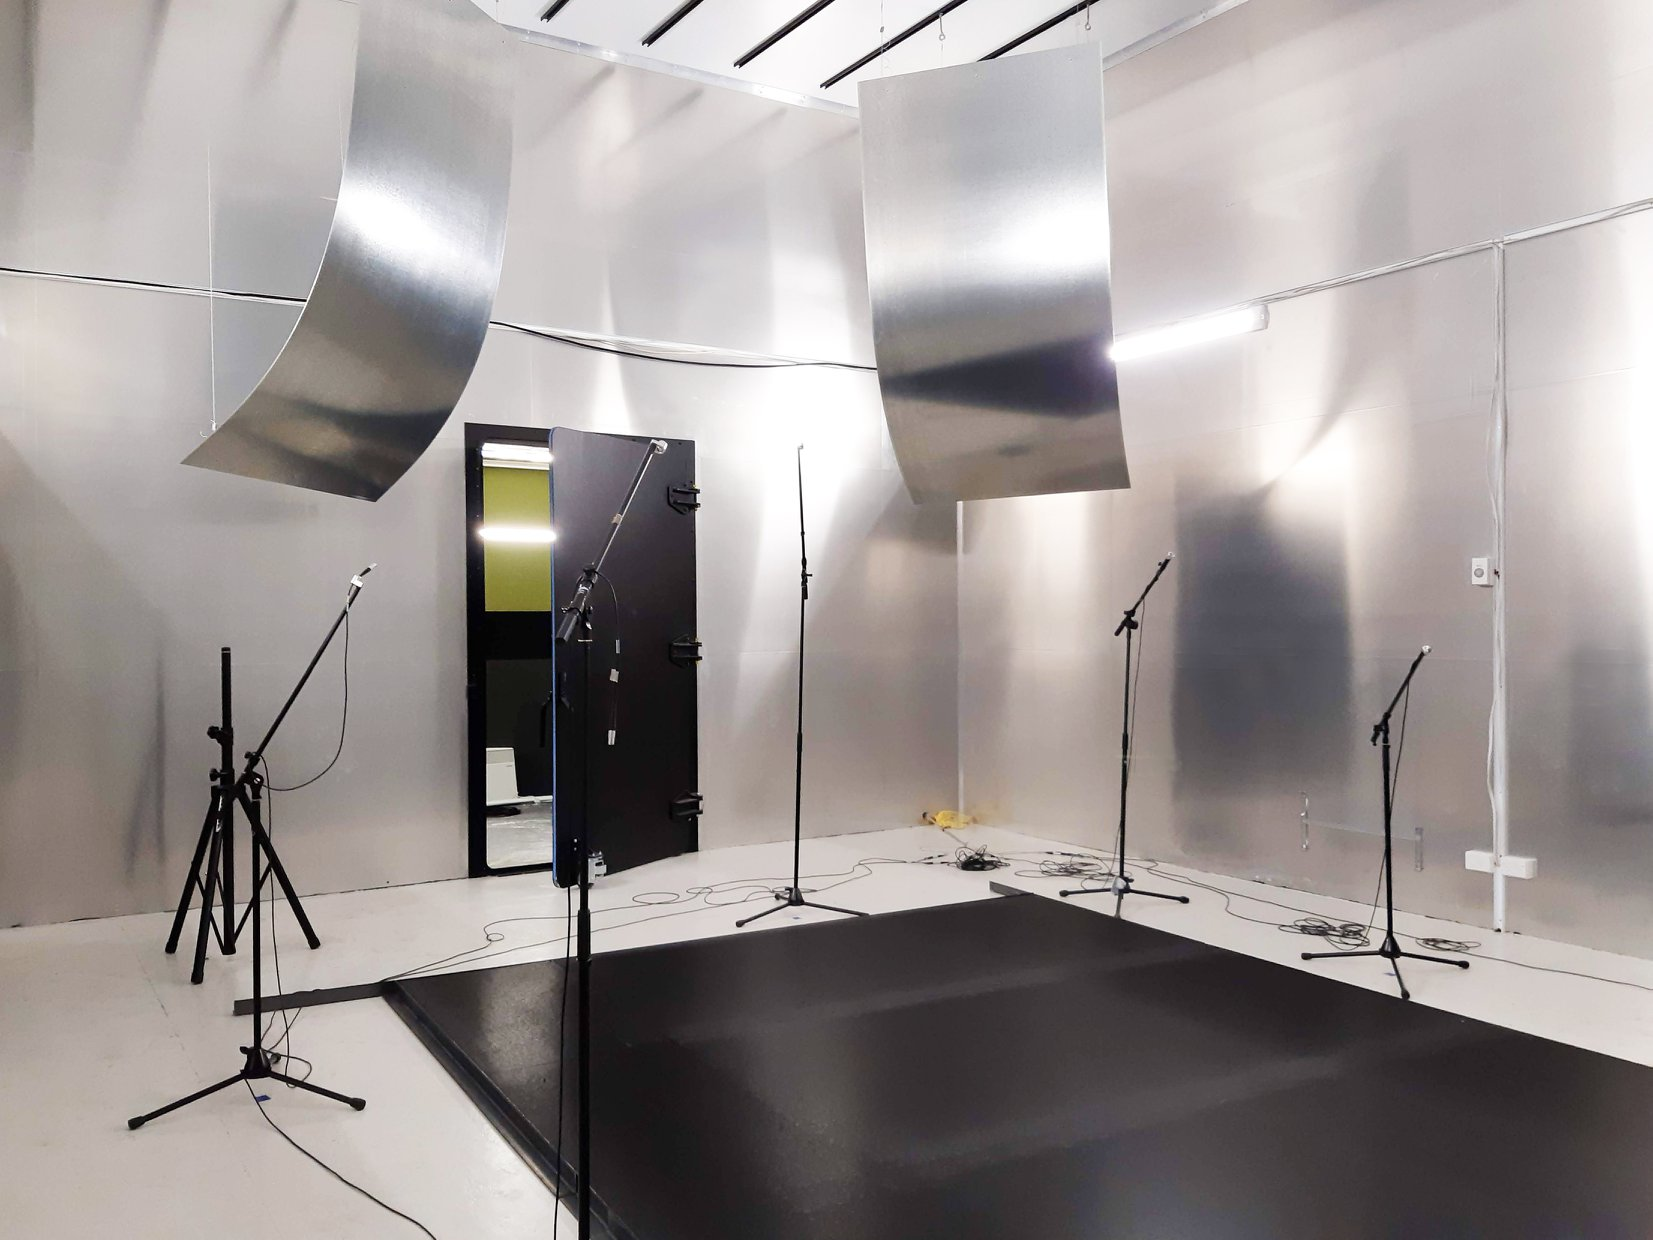 Acoustic lab testing